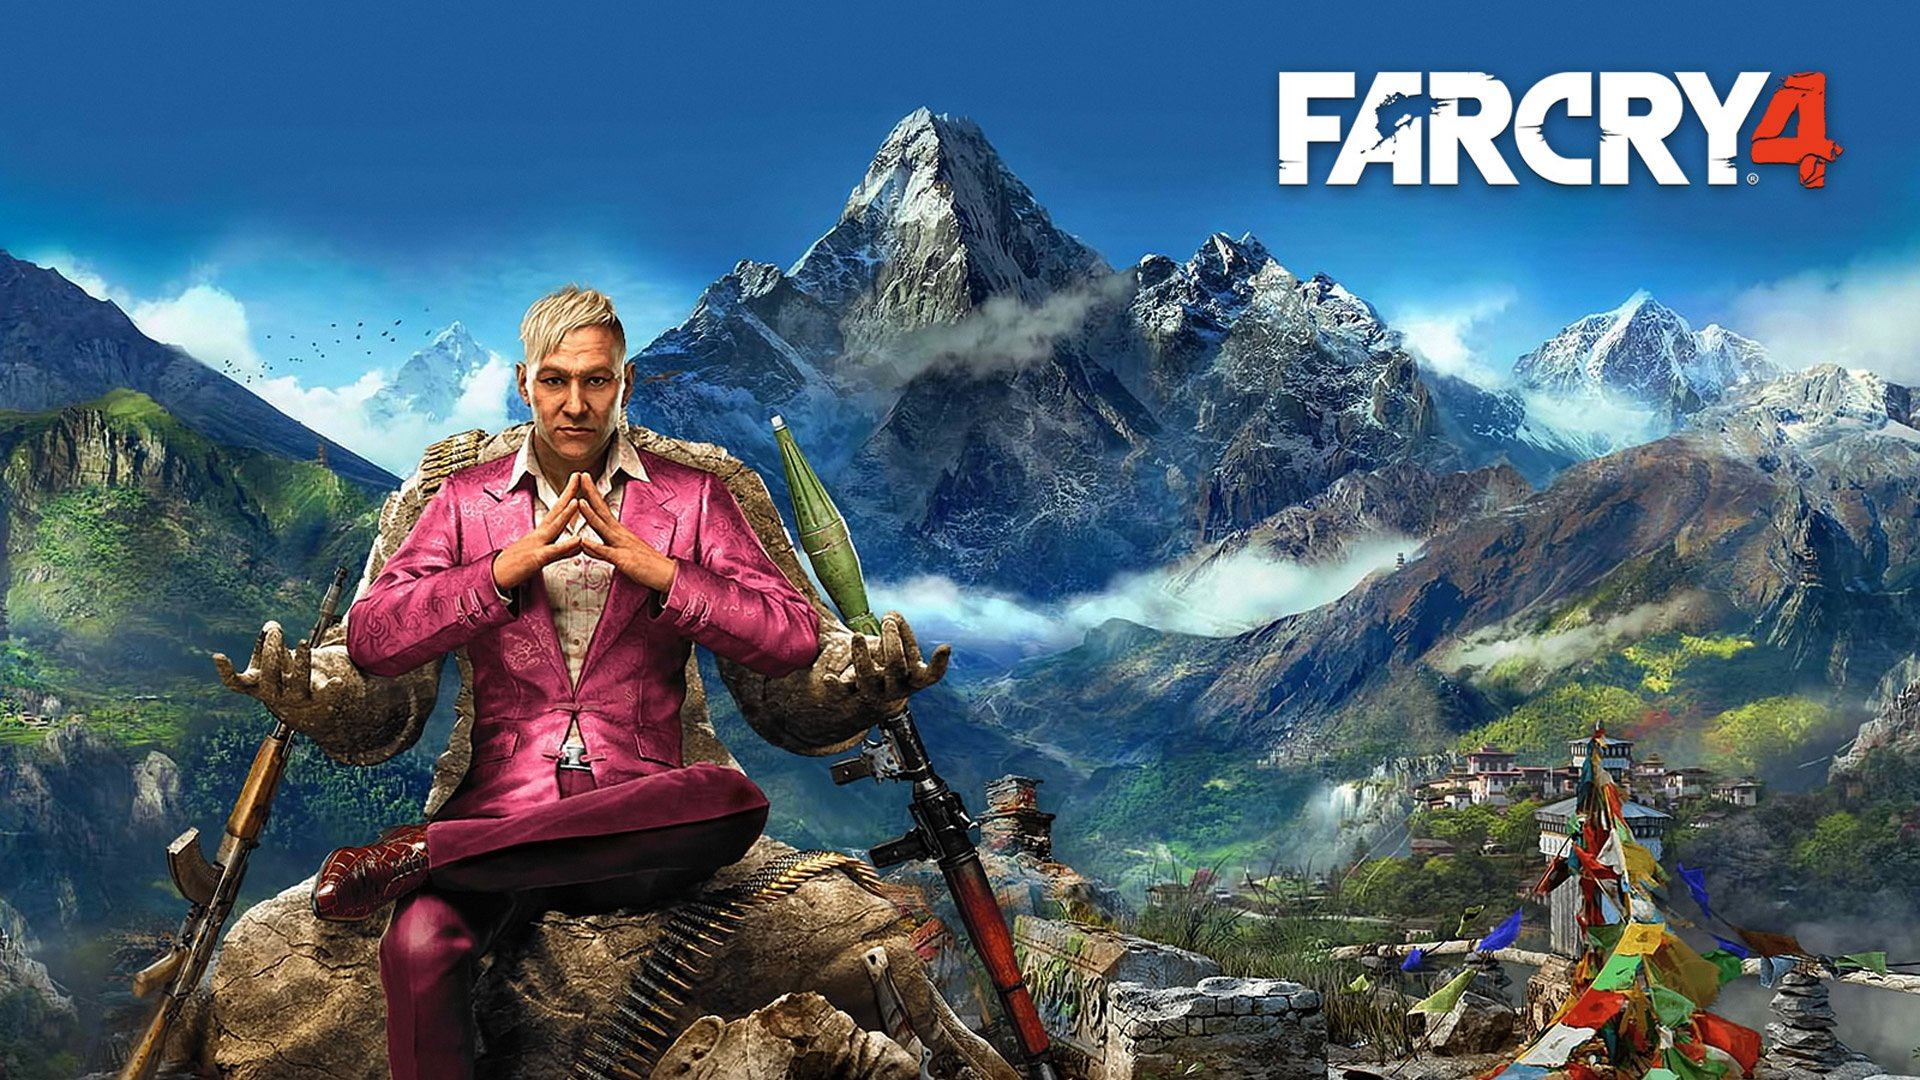 Free Download Far Cry 4 Game Hd 1920x1080 1080p Wallpaper And